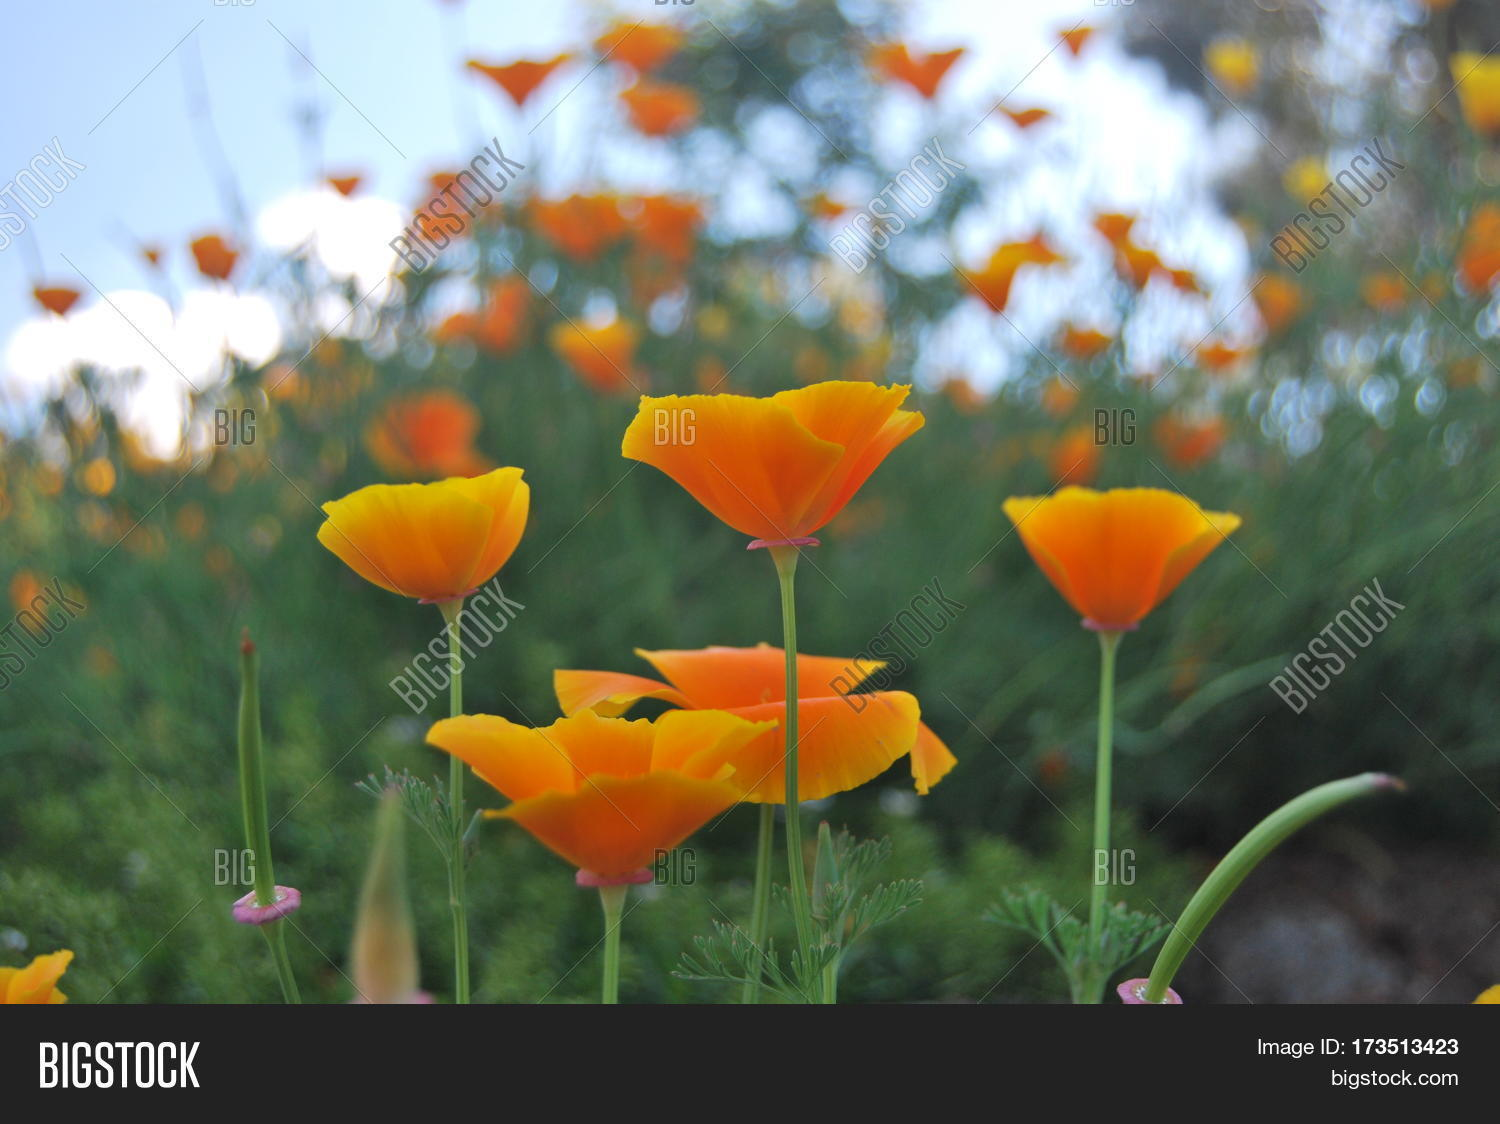 Yellowish Orange Poppy Image Photo Free Trial Bigstock